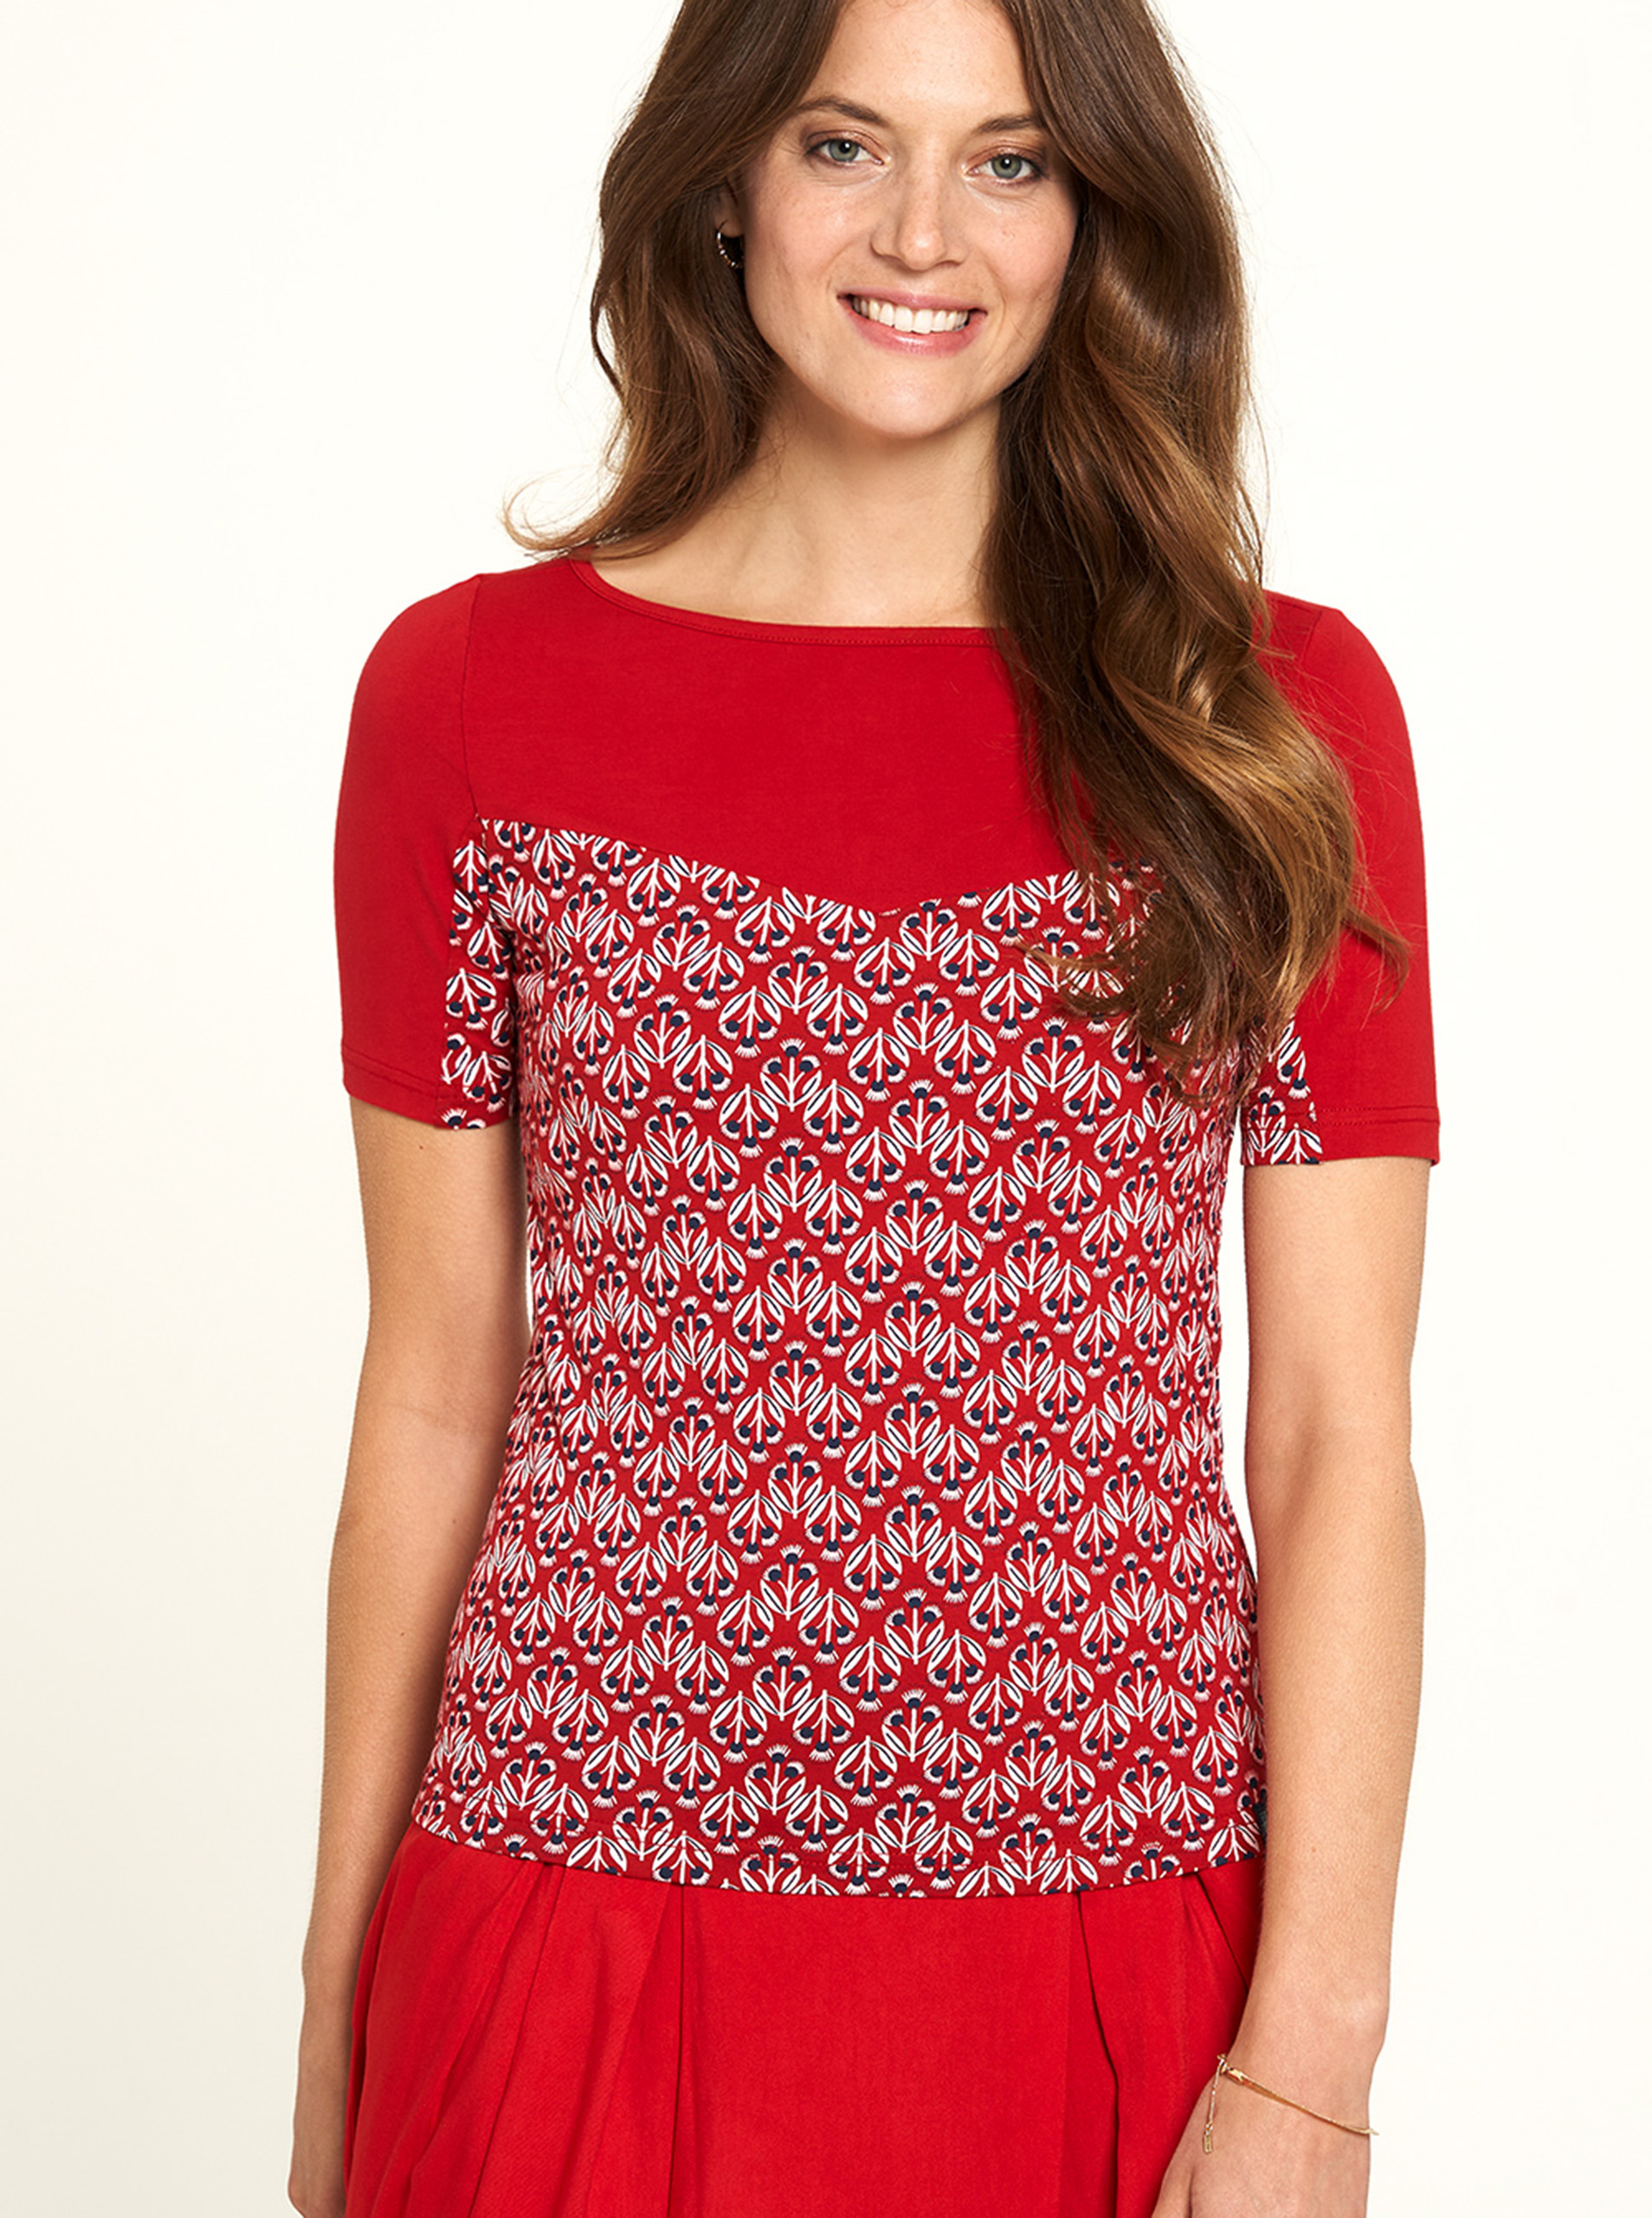 Tranquillo red T-shirt with pattern